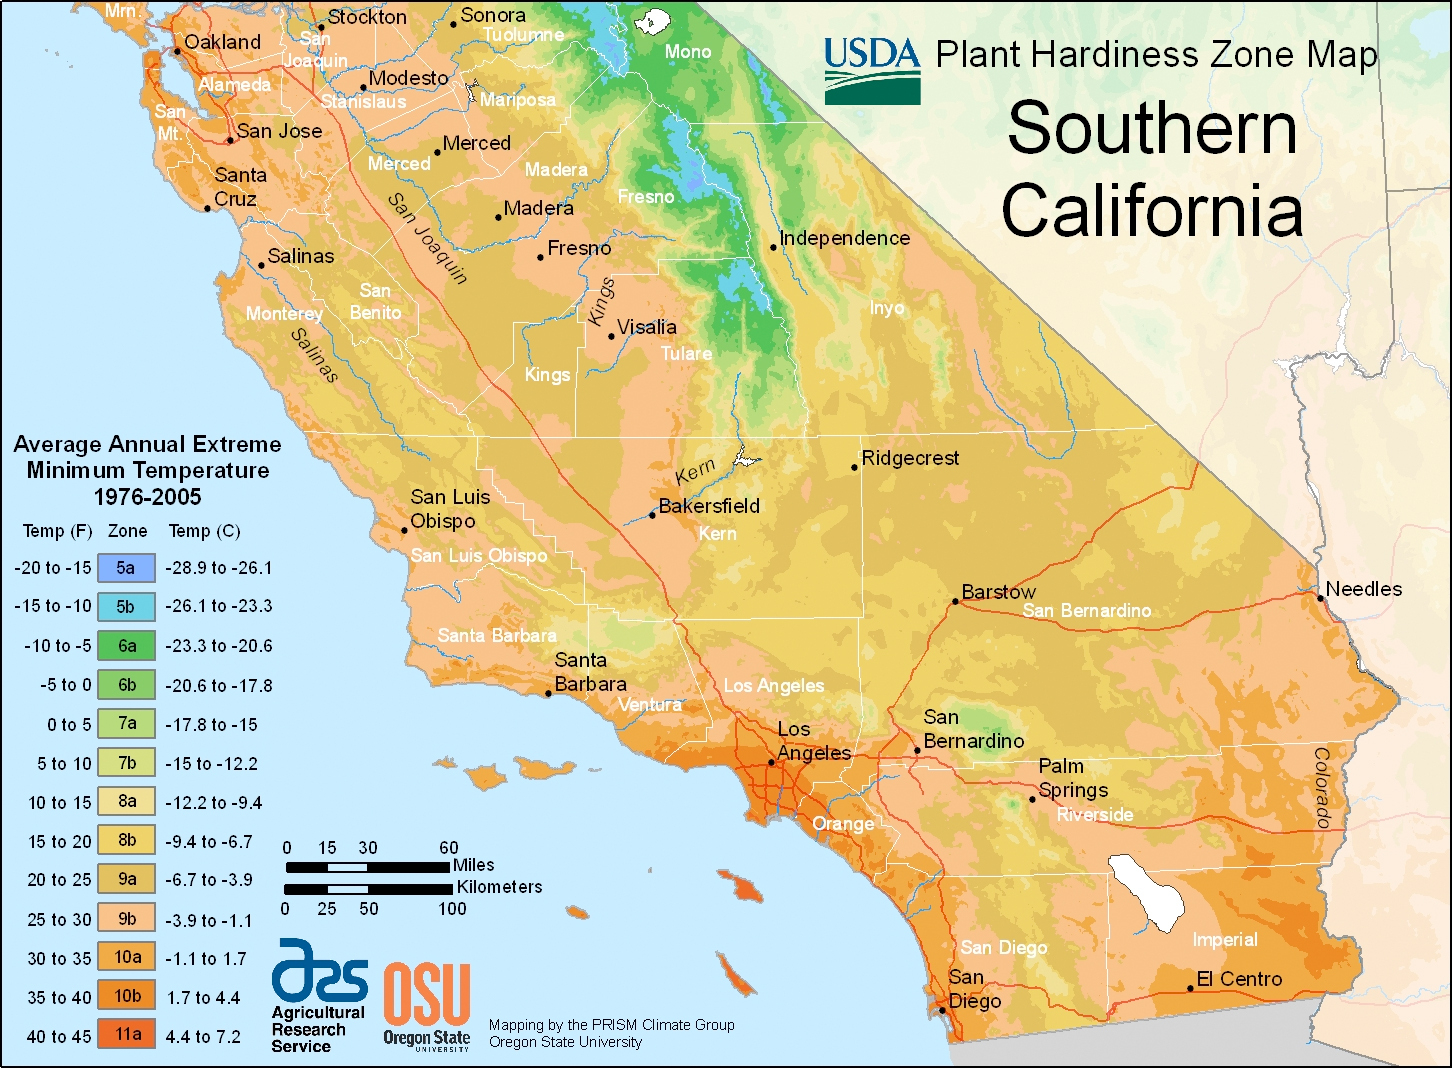 Zone Maps Maps Of California Climate Zone Map California Google Maps - Usda Map California